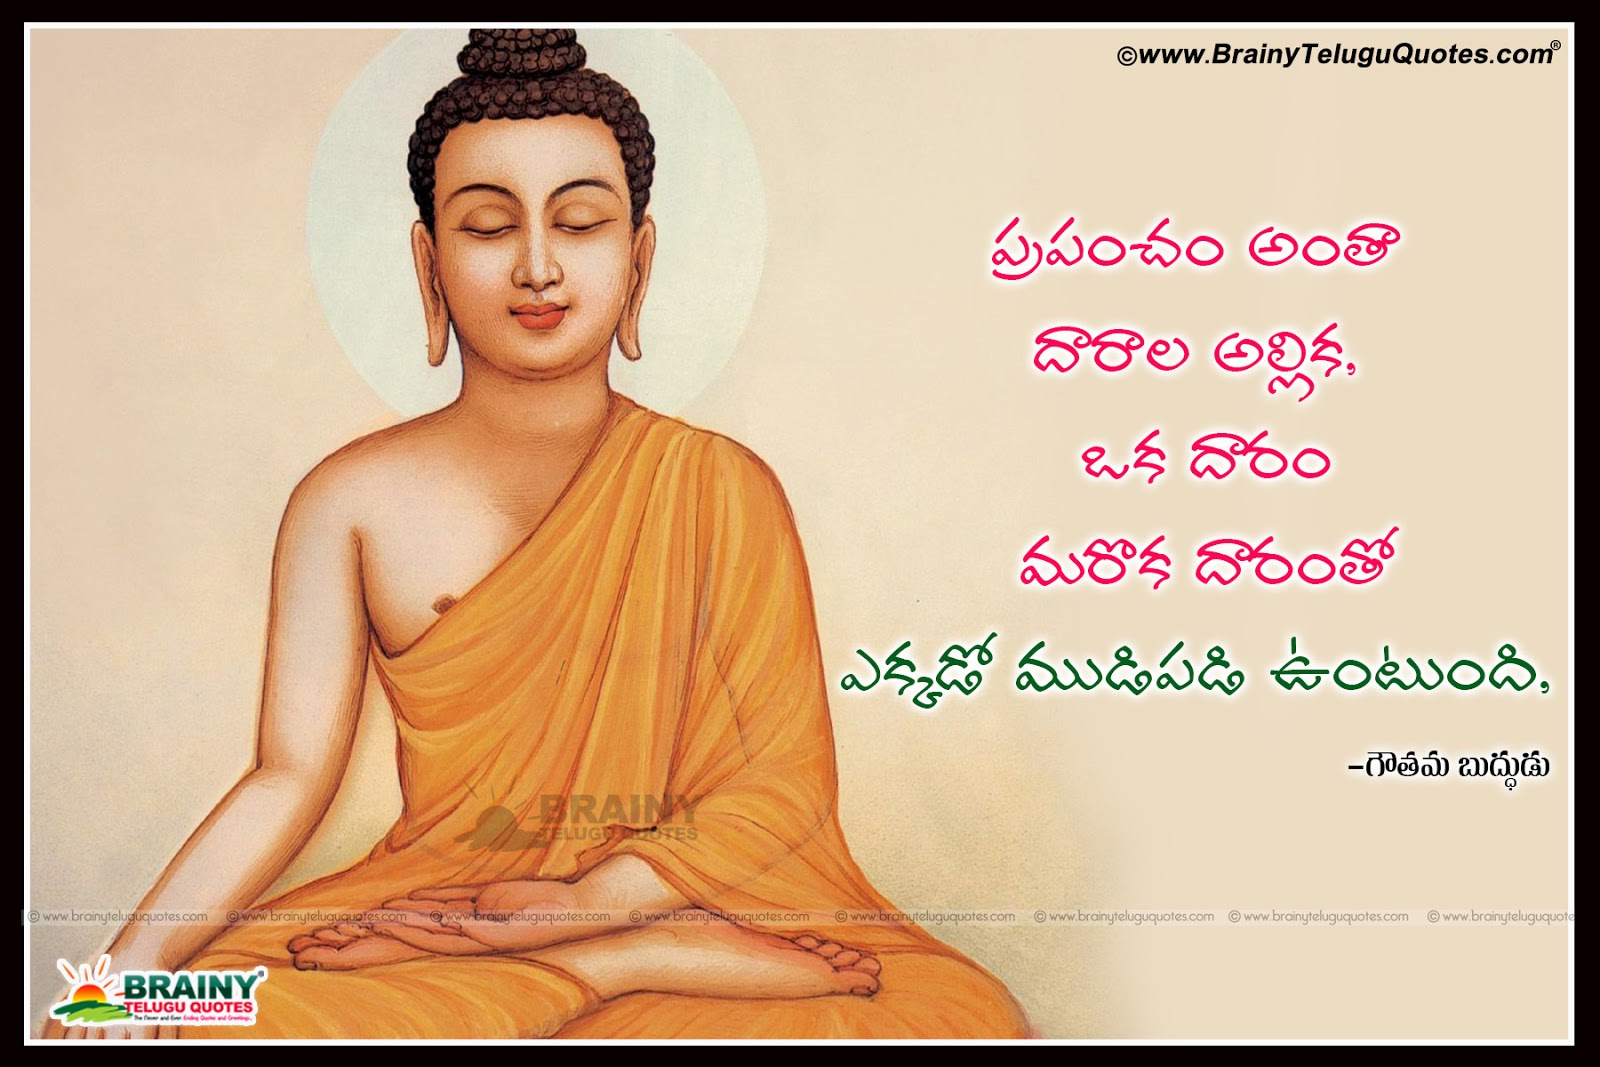 Top Telugu Gautama Buddha Inspiring Quotes Messages In Telugu Font With Hd Wallpapers Brainyteluguquotes Comtelugu Quotes English Quotes Hindi Quotes Tamil Quotes Greetings